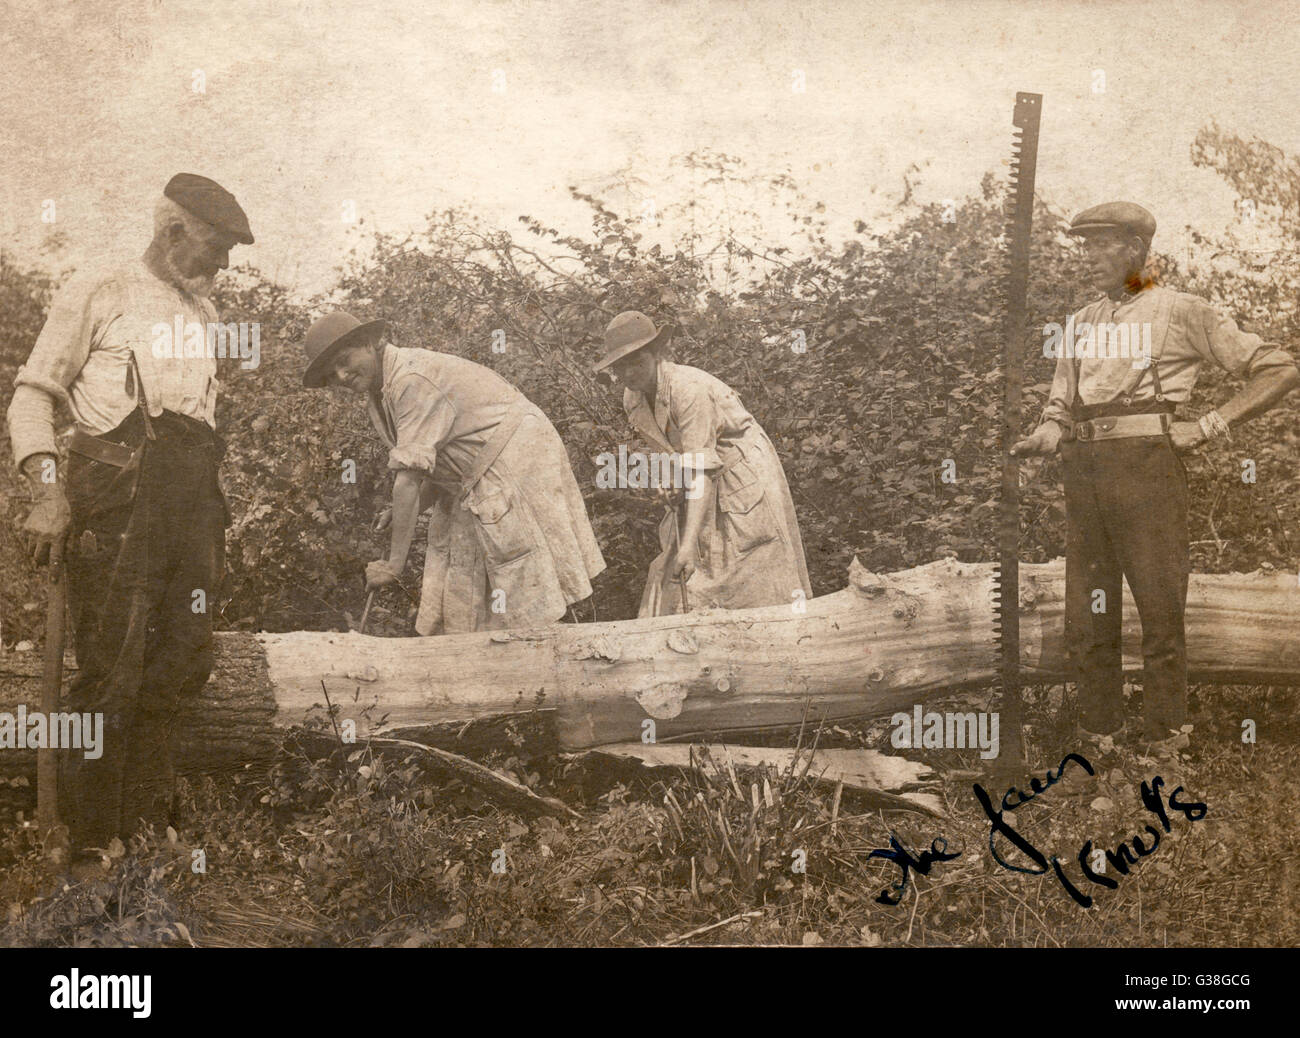 'Land girls' of the first  World War manoeuvre a heavy  log under the appraising  eyes of two countrymen - Stock Image